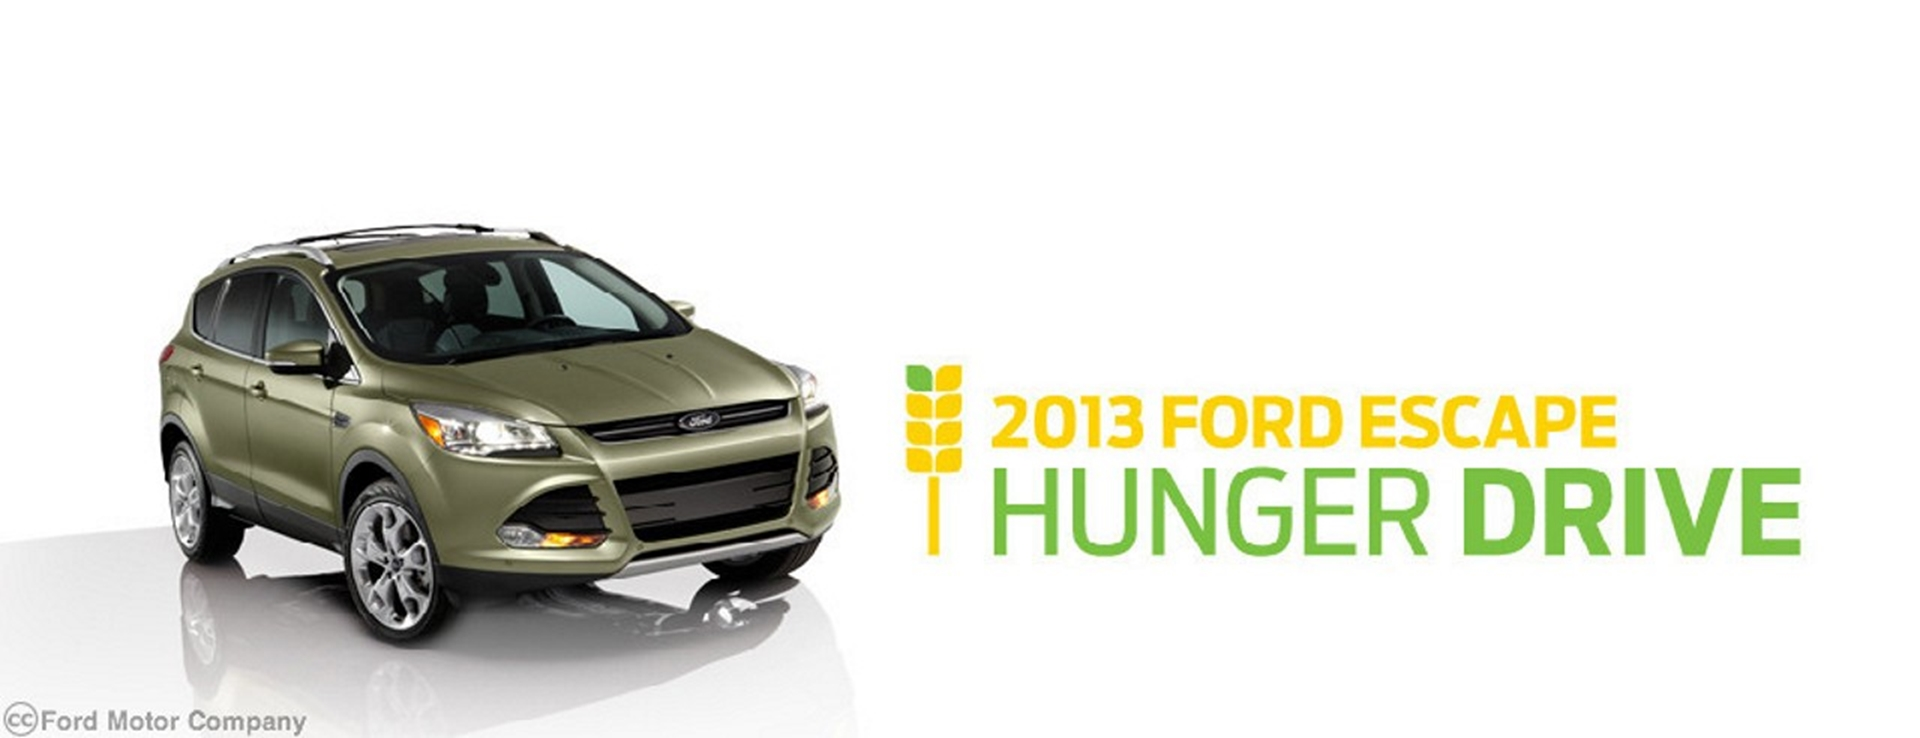 Ford Hunger Drive